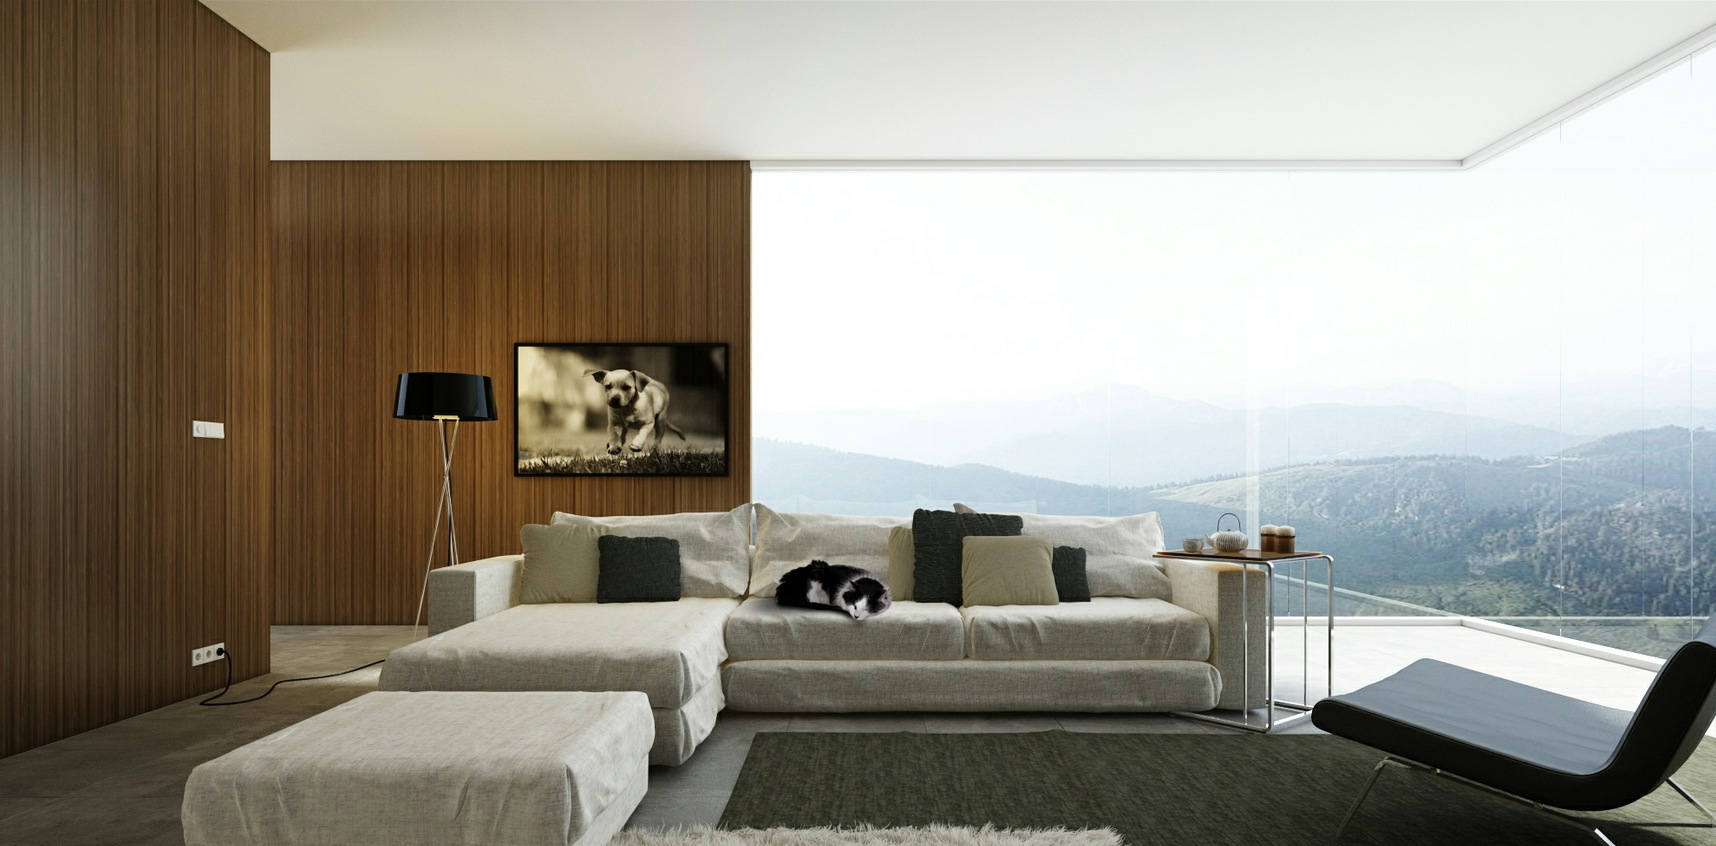 Living rooms with great views - Lounge rooms ...